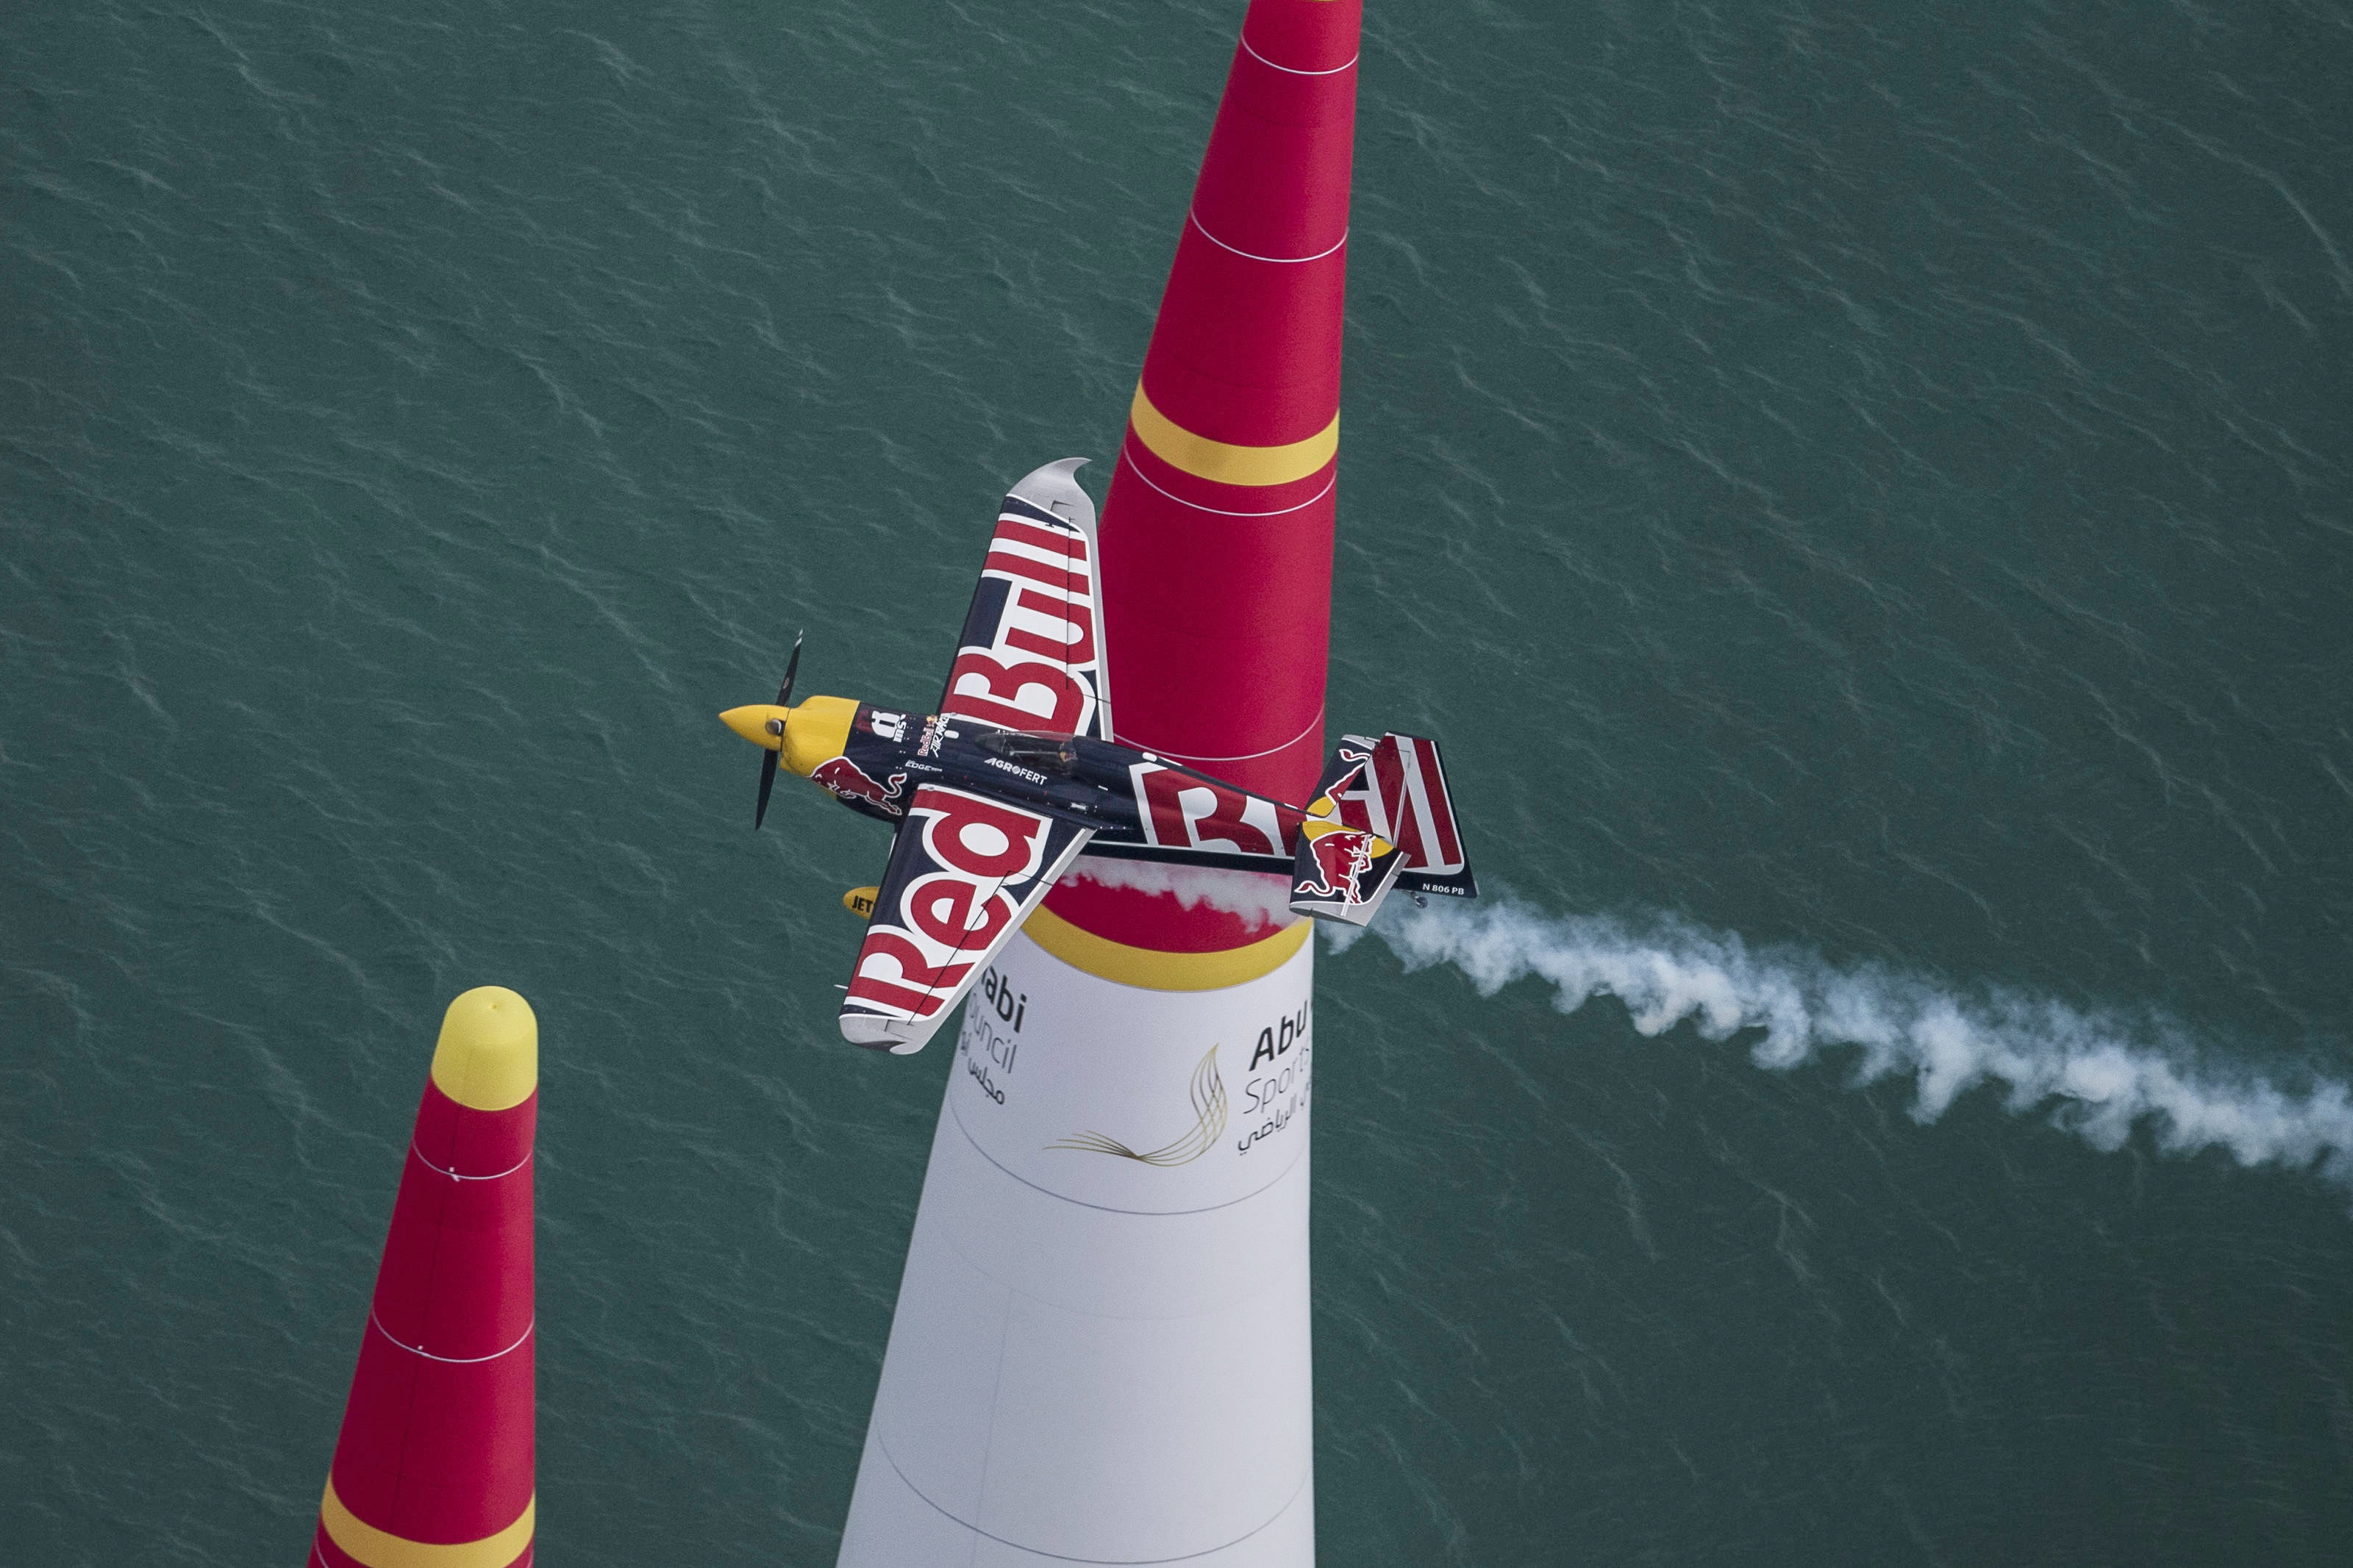 Martin Sonka of the Czech Republic won the first stage of the Red Bull Air Race World Championship in Abu Dhabi, United Arab Emirates on Feb. 11. Photo by Joerg Mitter / Red Bull Content Pool.